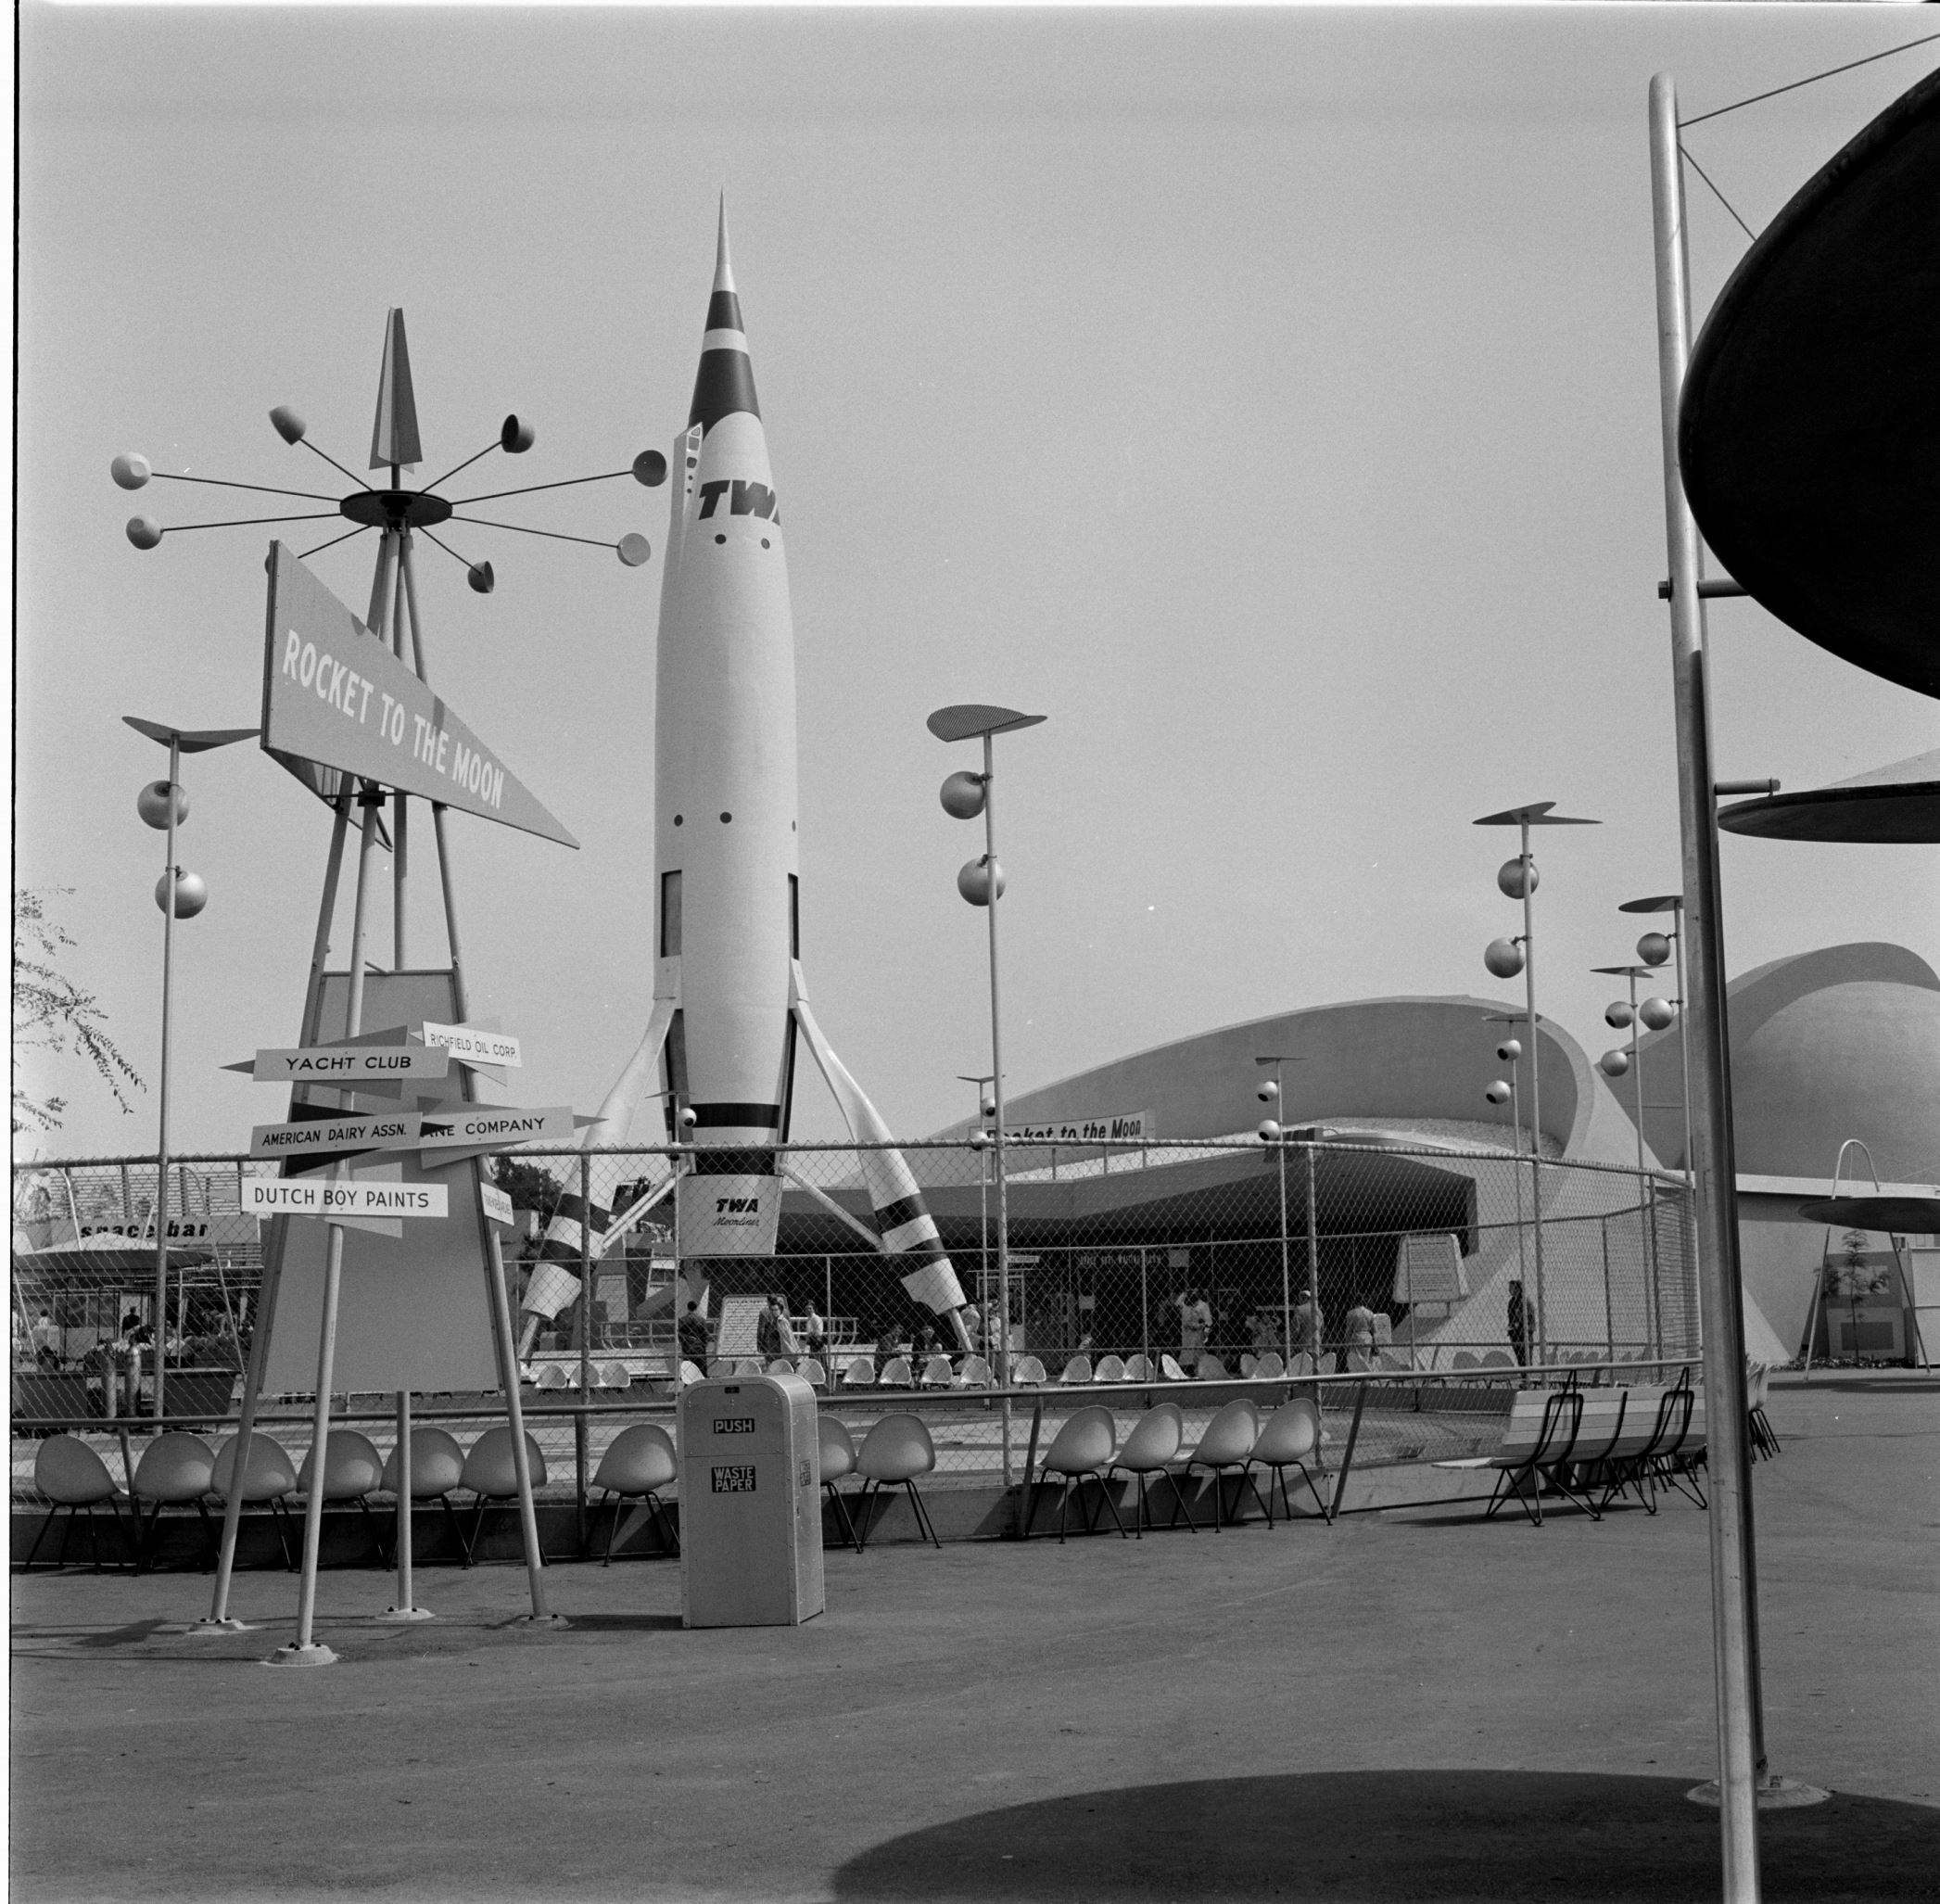 Slide 8 of 33: UNITED STATES - MARCH 19: Disneyland 1956. Tomorrowland represents the opportunities and abilities of the future, from earthbound science to extraterrestrial travel. Pictured is the red and white TWA-sponsored Rocket To The Moon standing 70 feet tall as the centerpiece of Tomorrowland. (Photo by Dick Day/The Enthusiast Network/Getty Images)